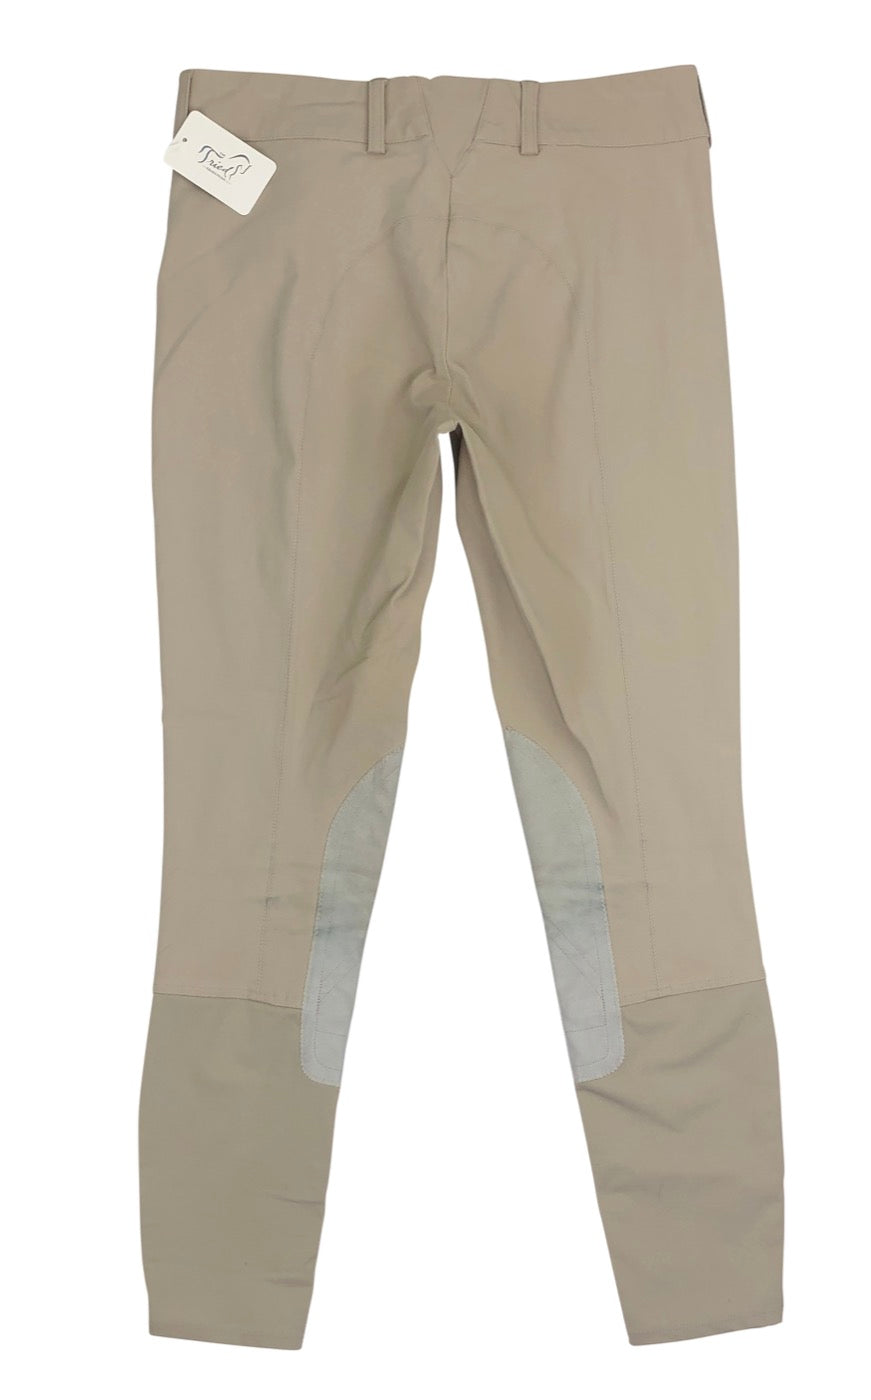 Back view of Ariat Olympia Knee Patch Breeches in Tan